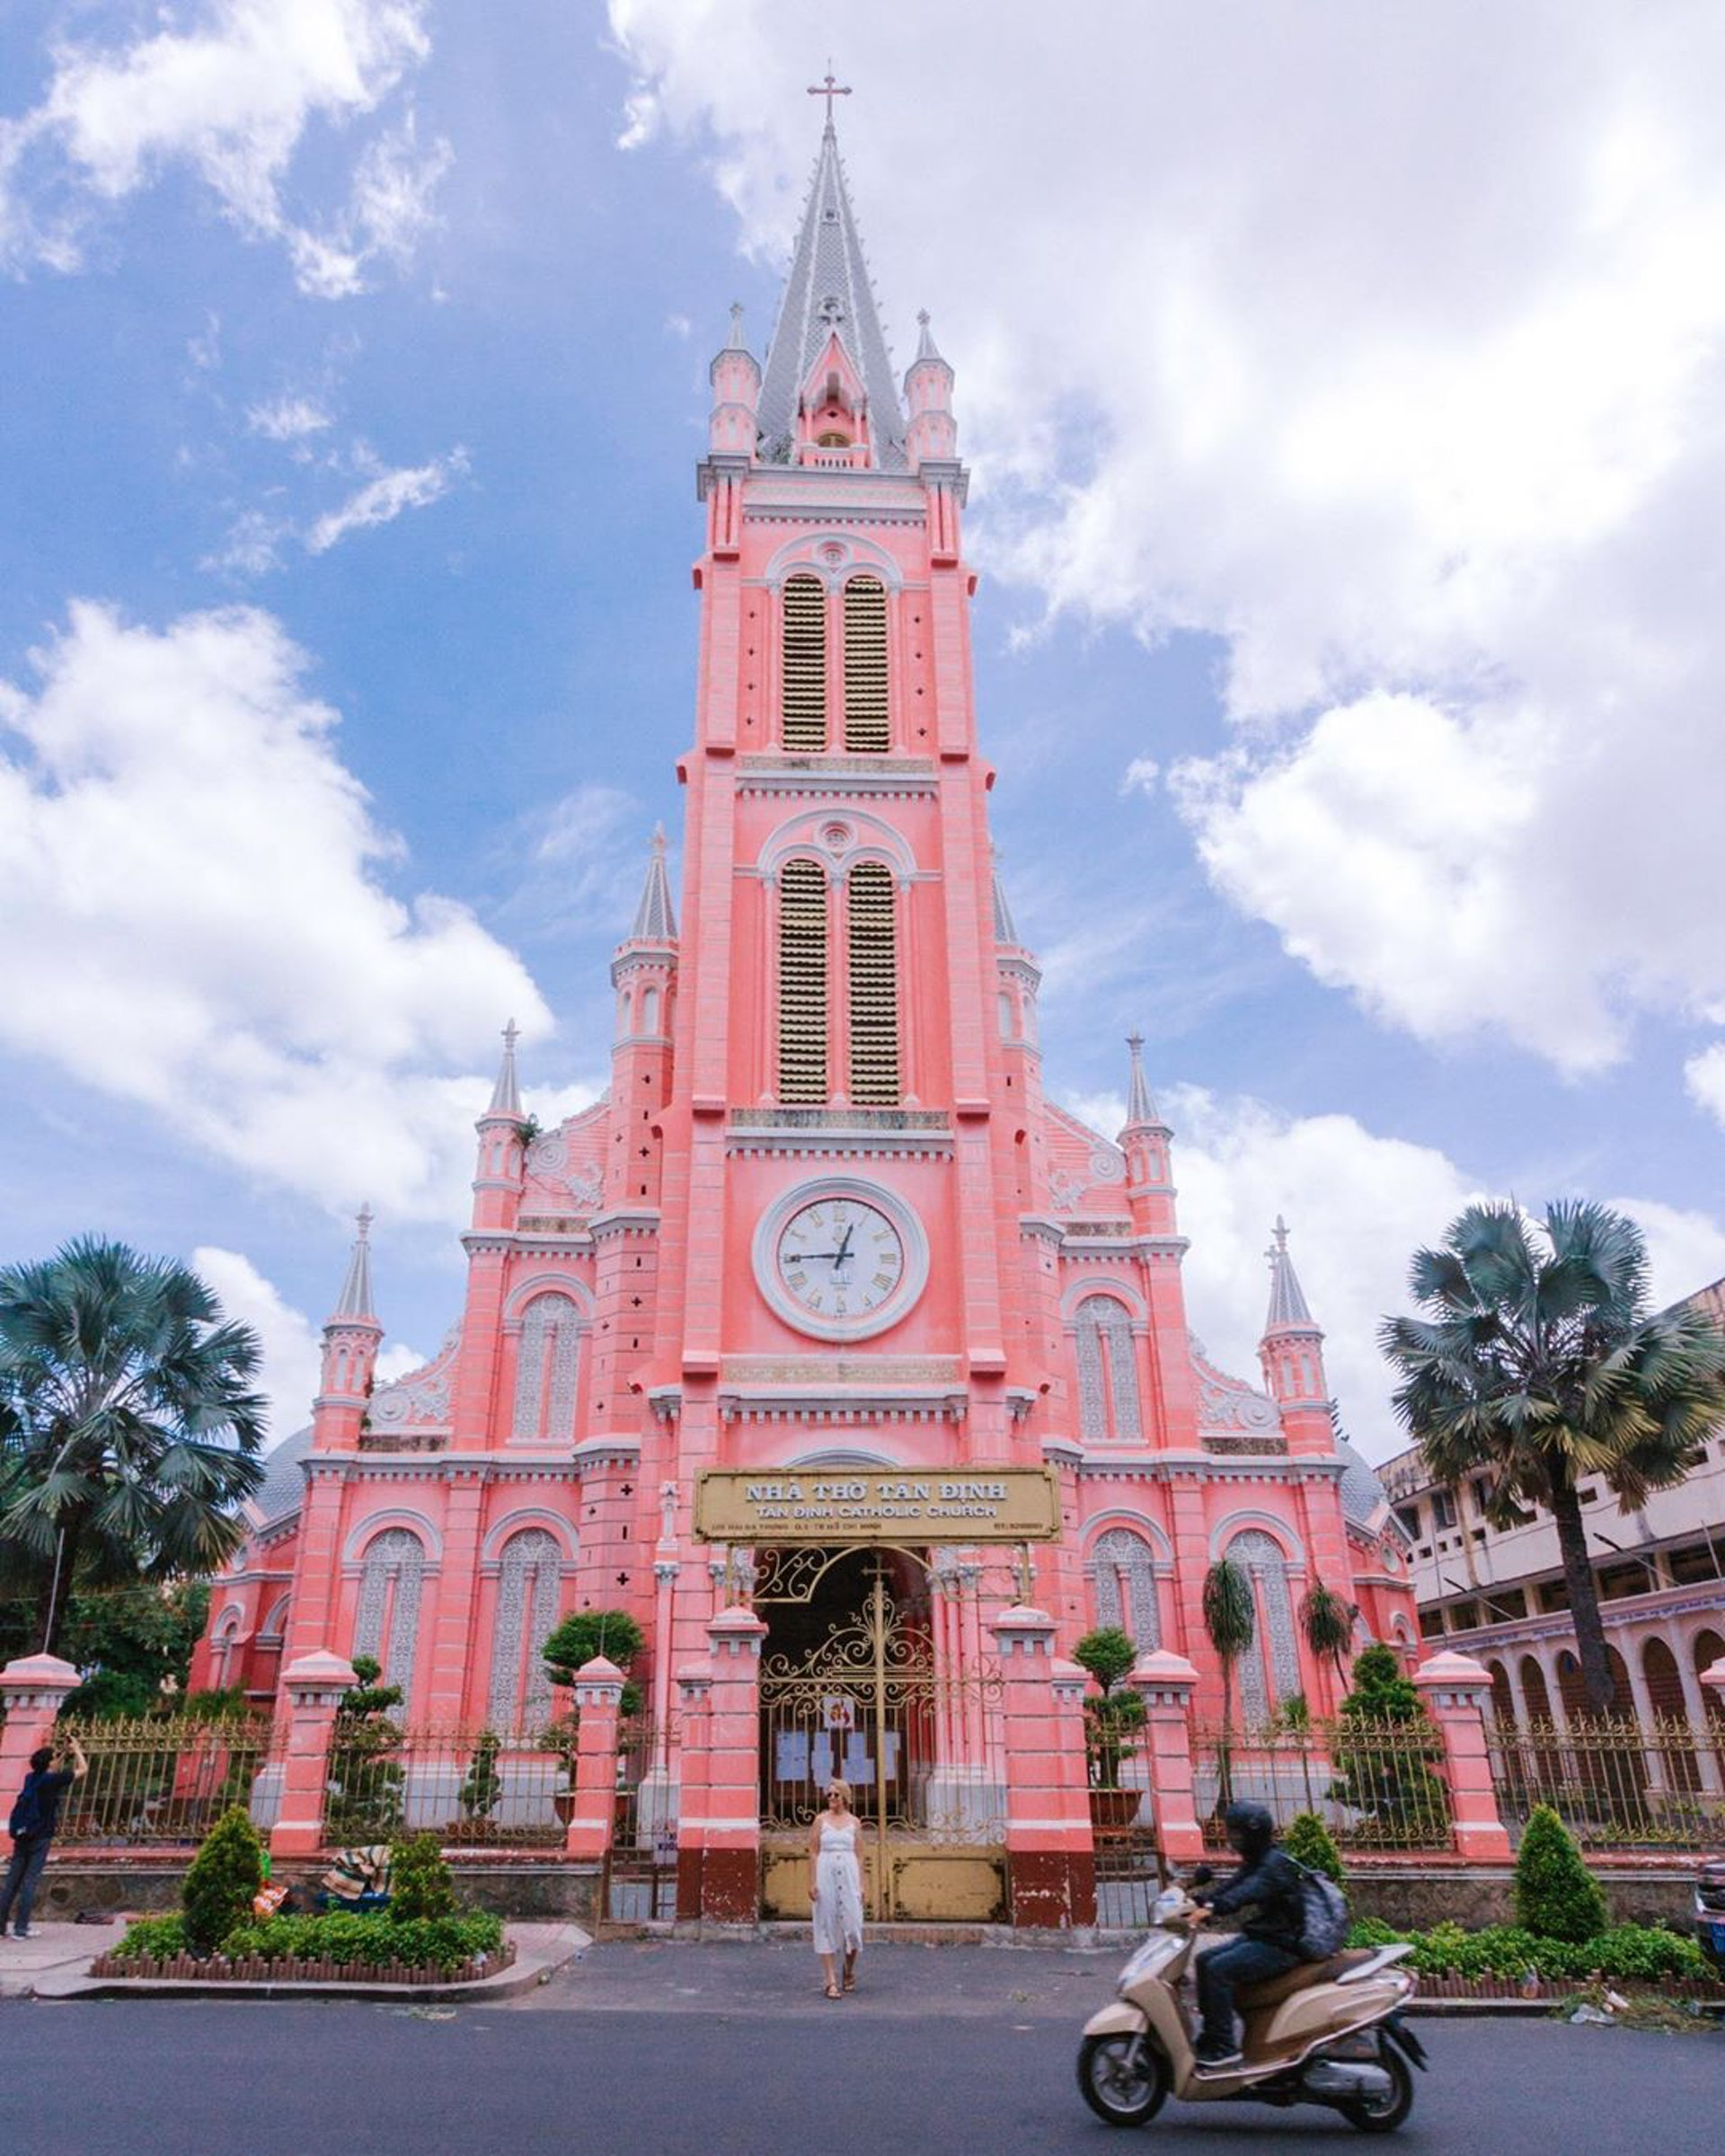 越南─粉紅教堂Tan Dinh Church(Ig@milesofsmiles)